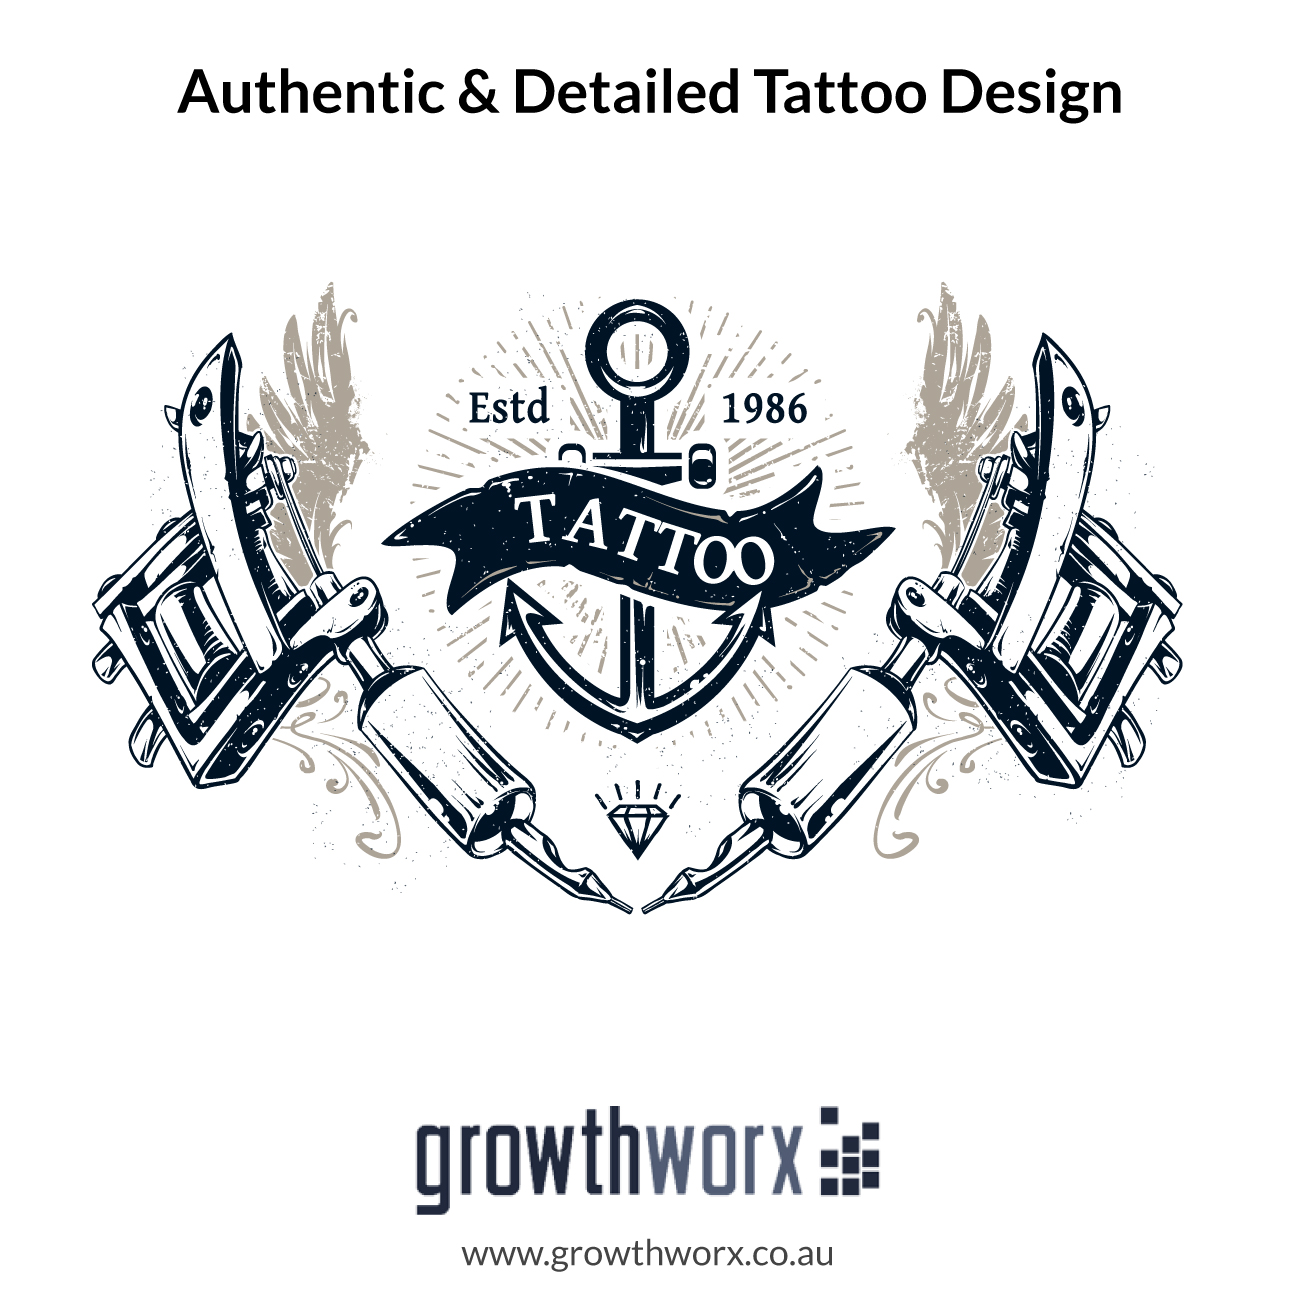 I will create authentic and detailed tattoo design 1